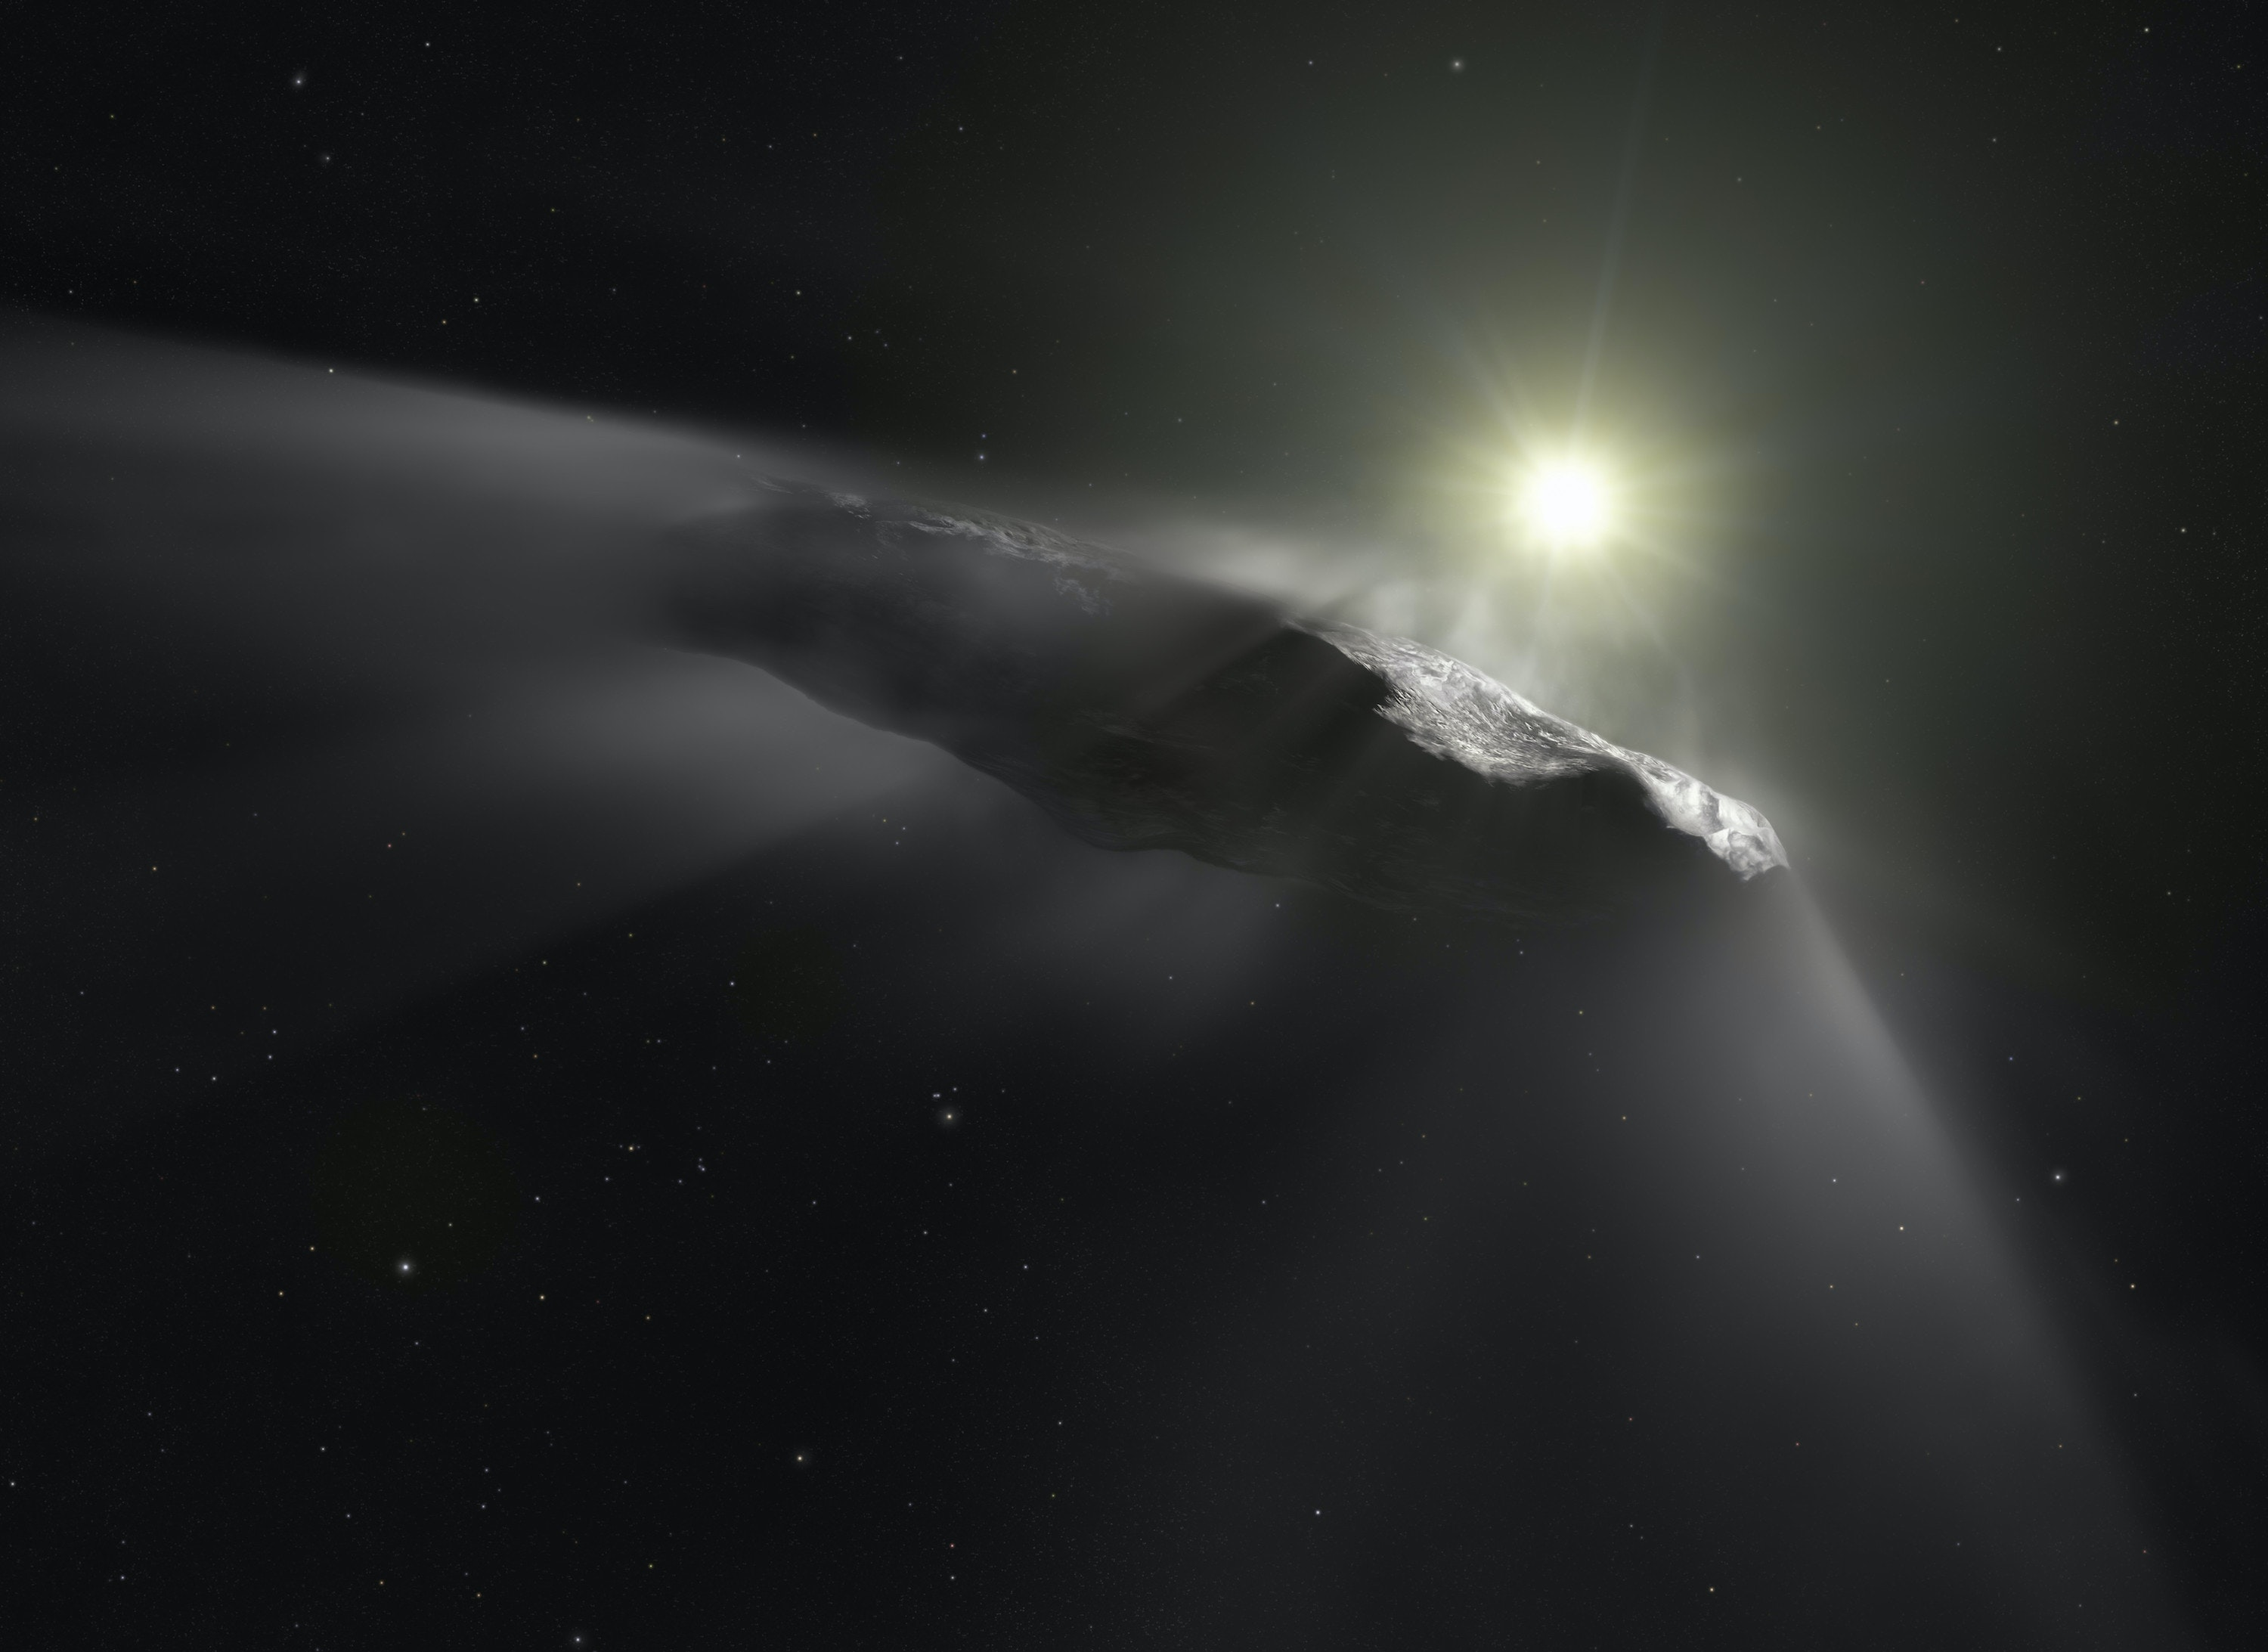 Evidence of aliens? What to make of research and reporting on 'Oumuamua, our visitor from space